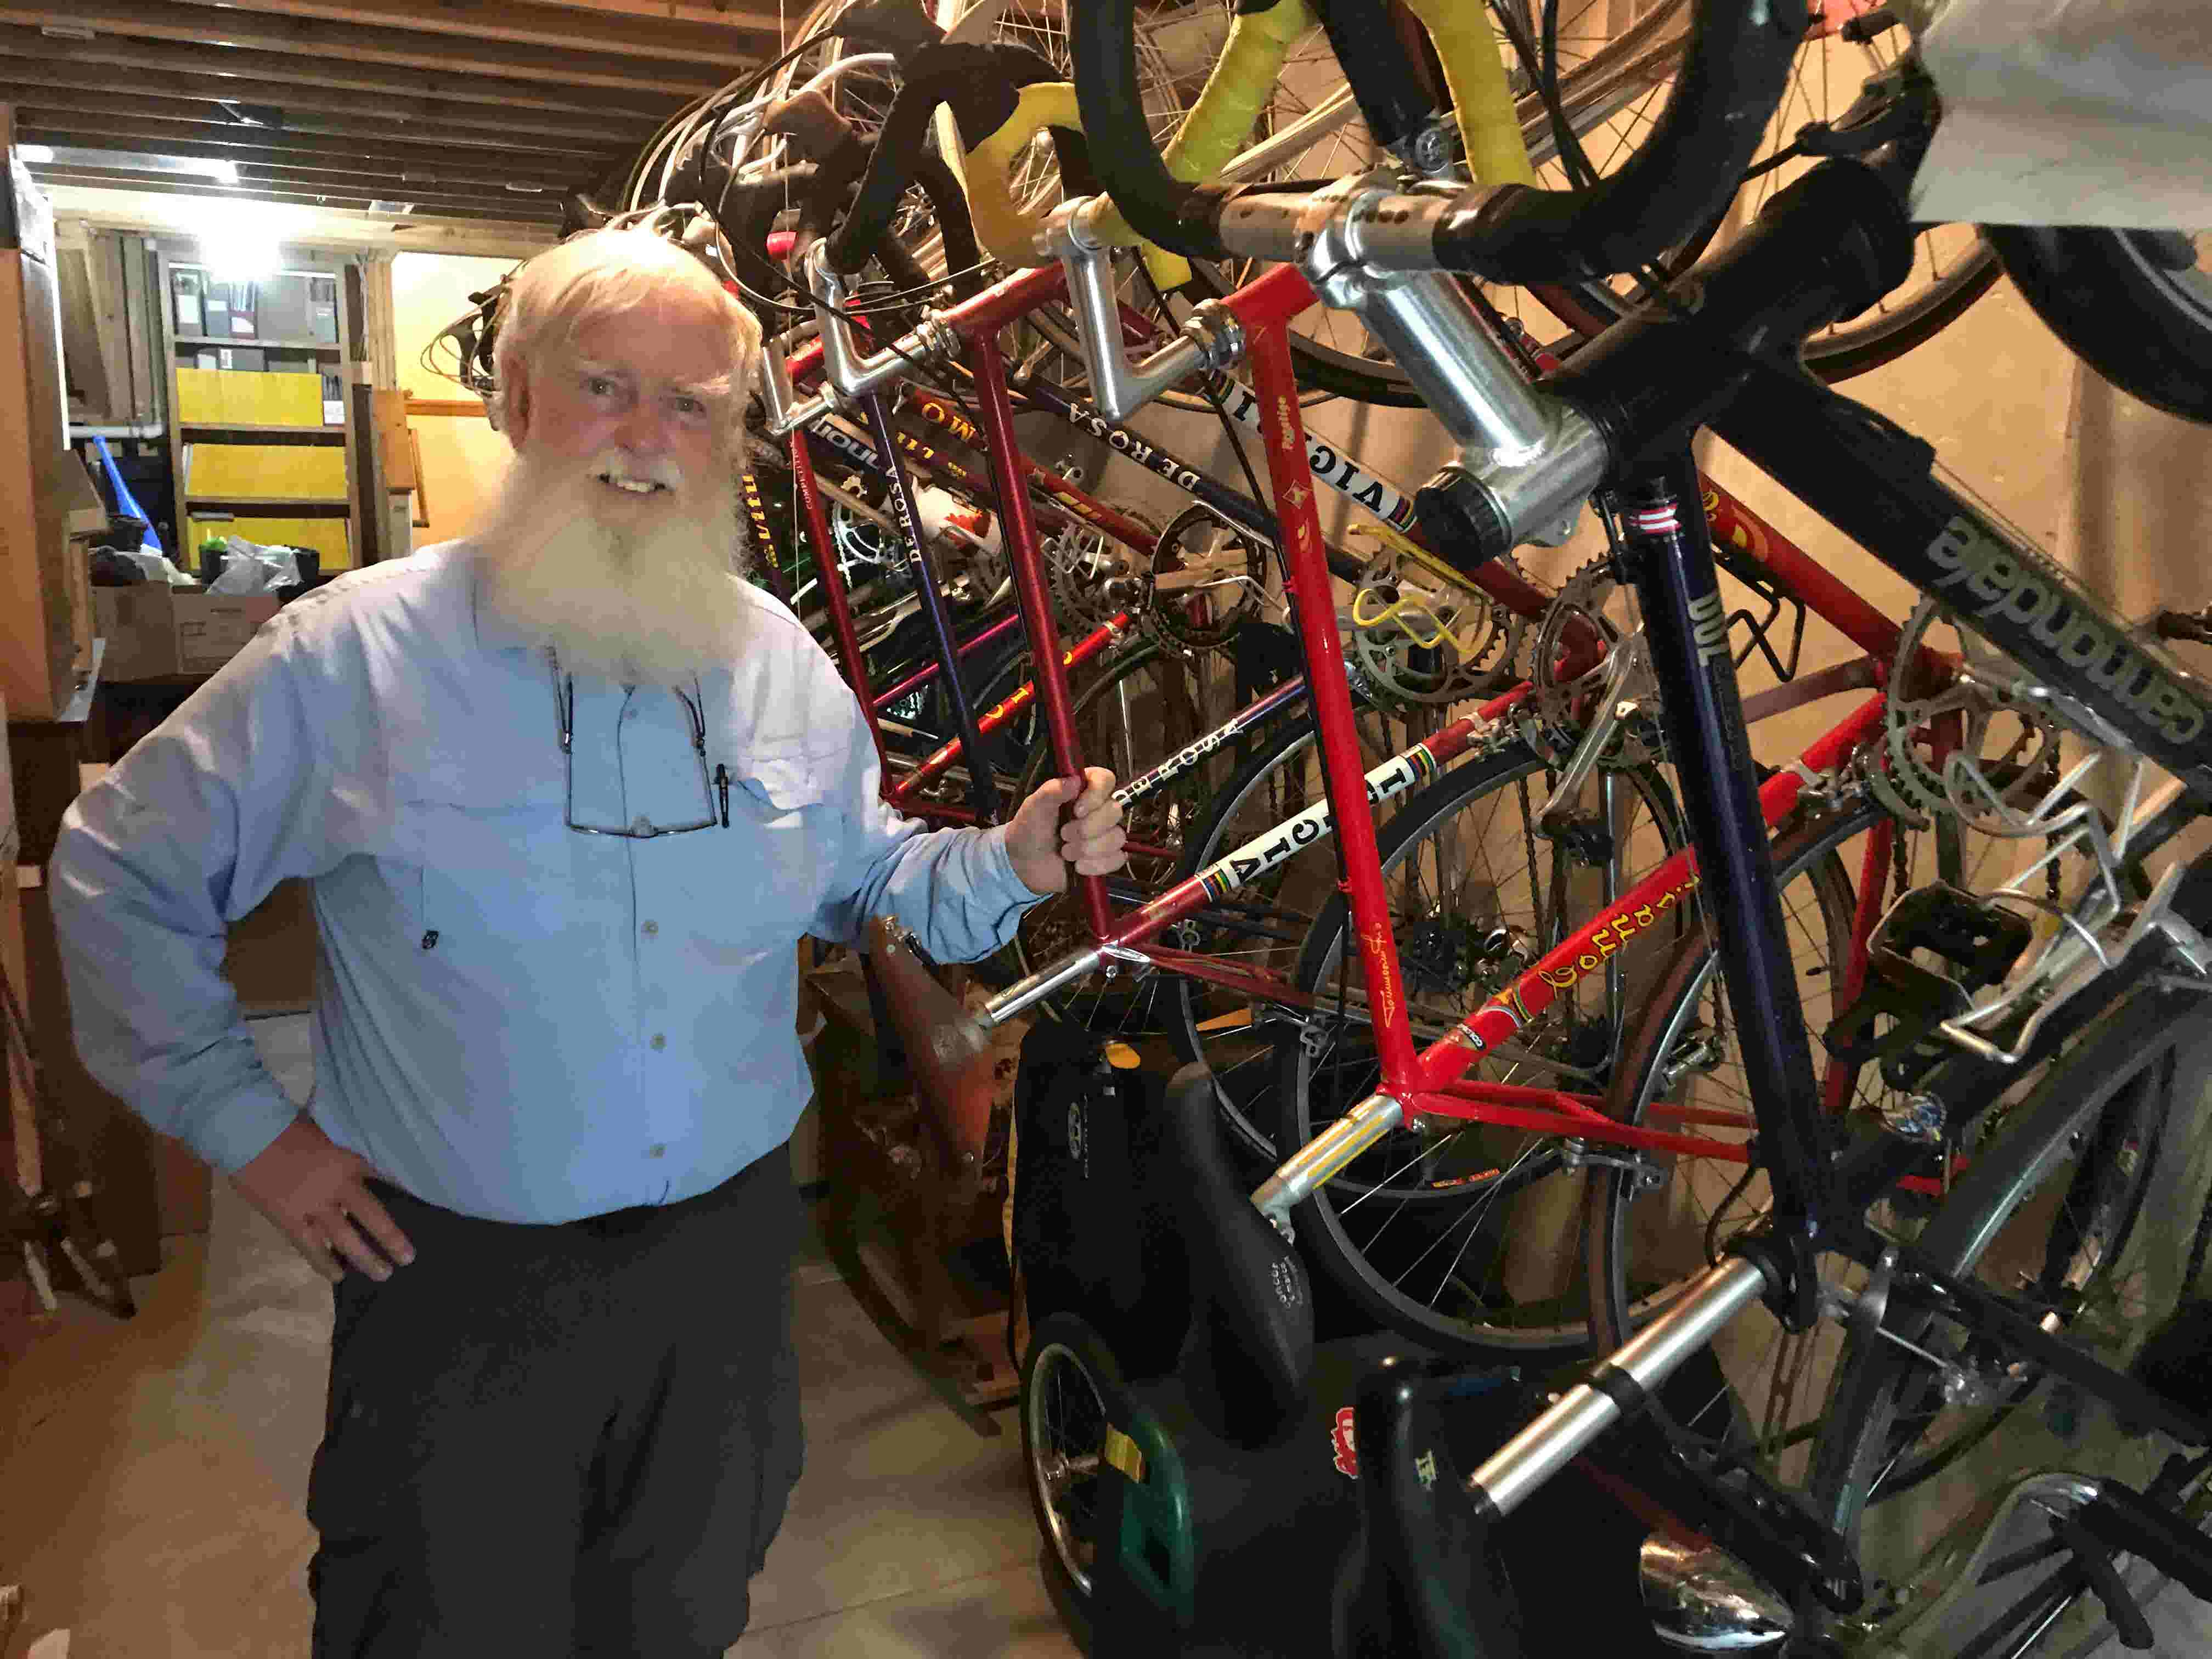 Duggan: Fort Collins honors Rick Price for years of bicycling advocacy